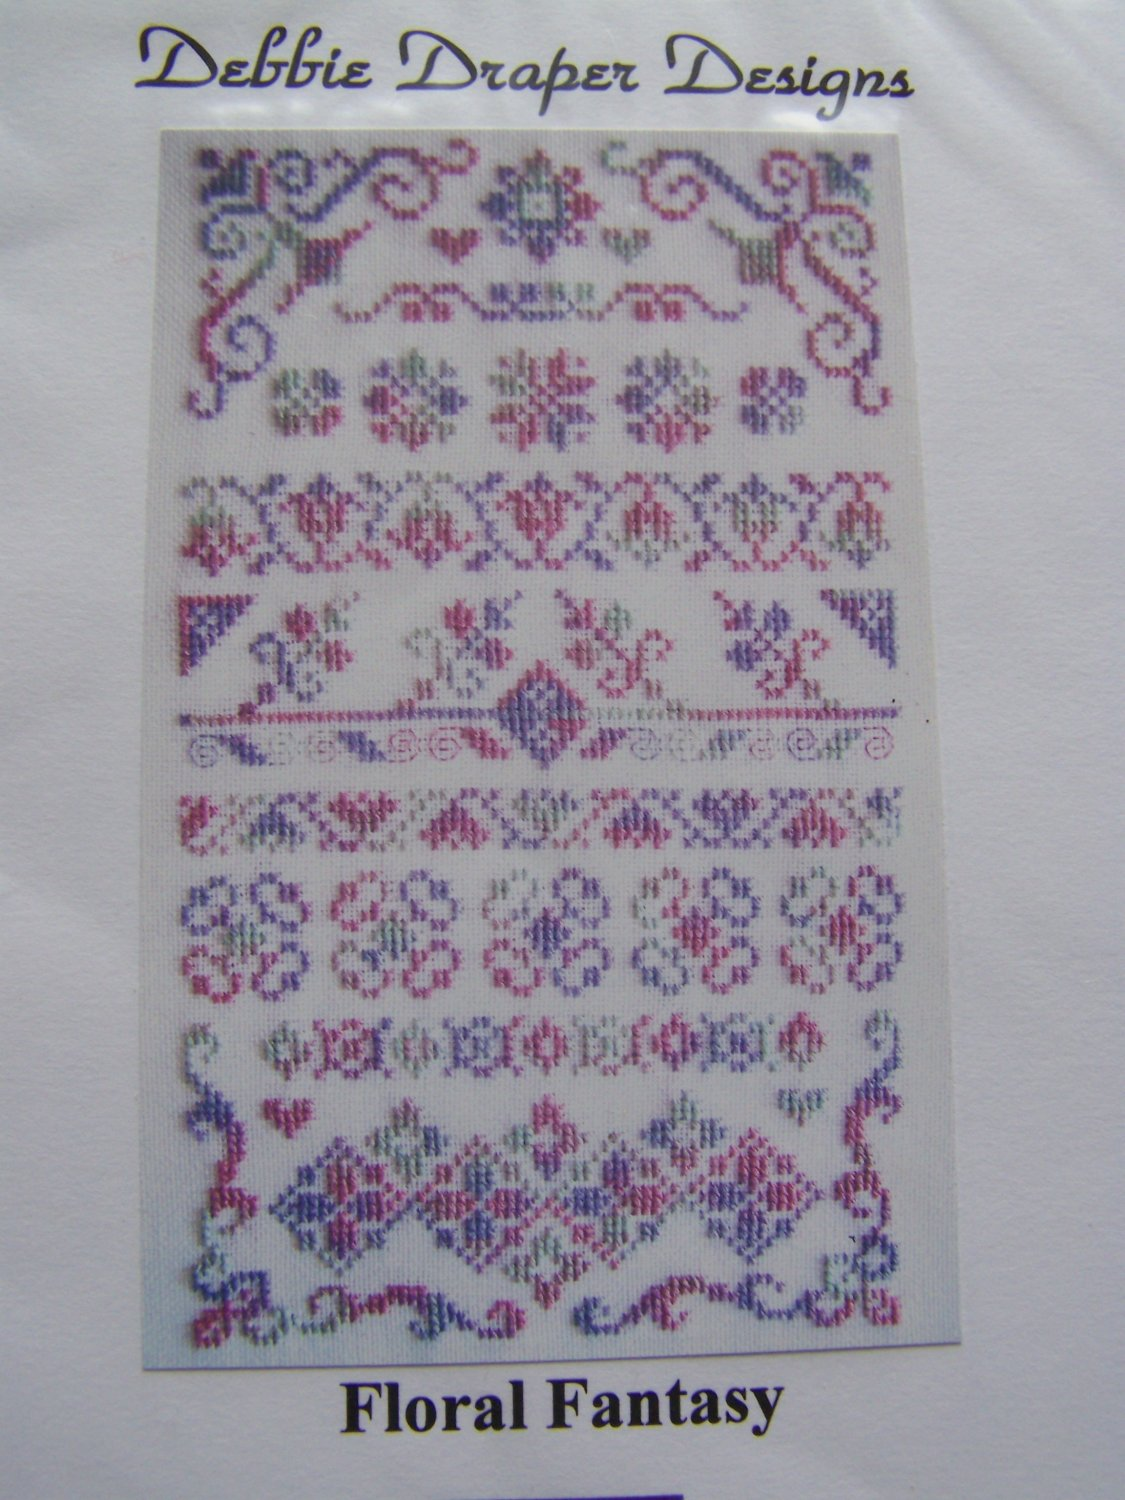 New Debbie Draper Designs Floral Fantasy Cross Stitch sampler Pattern Graph Free Heart's Desire